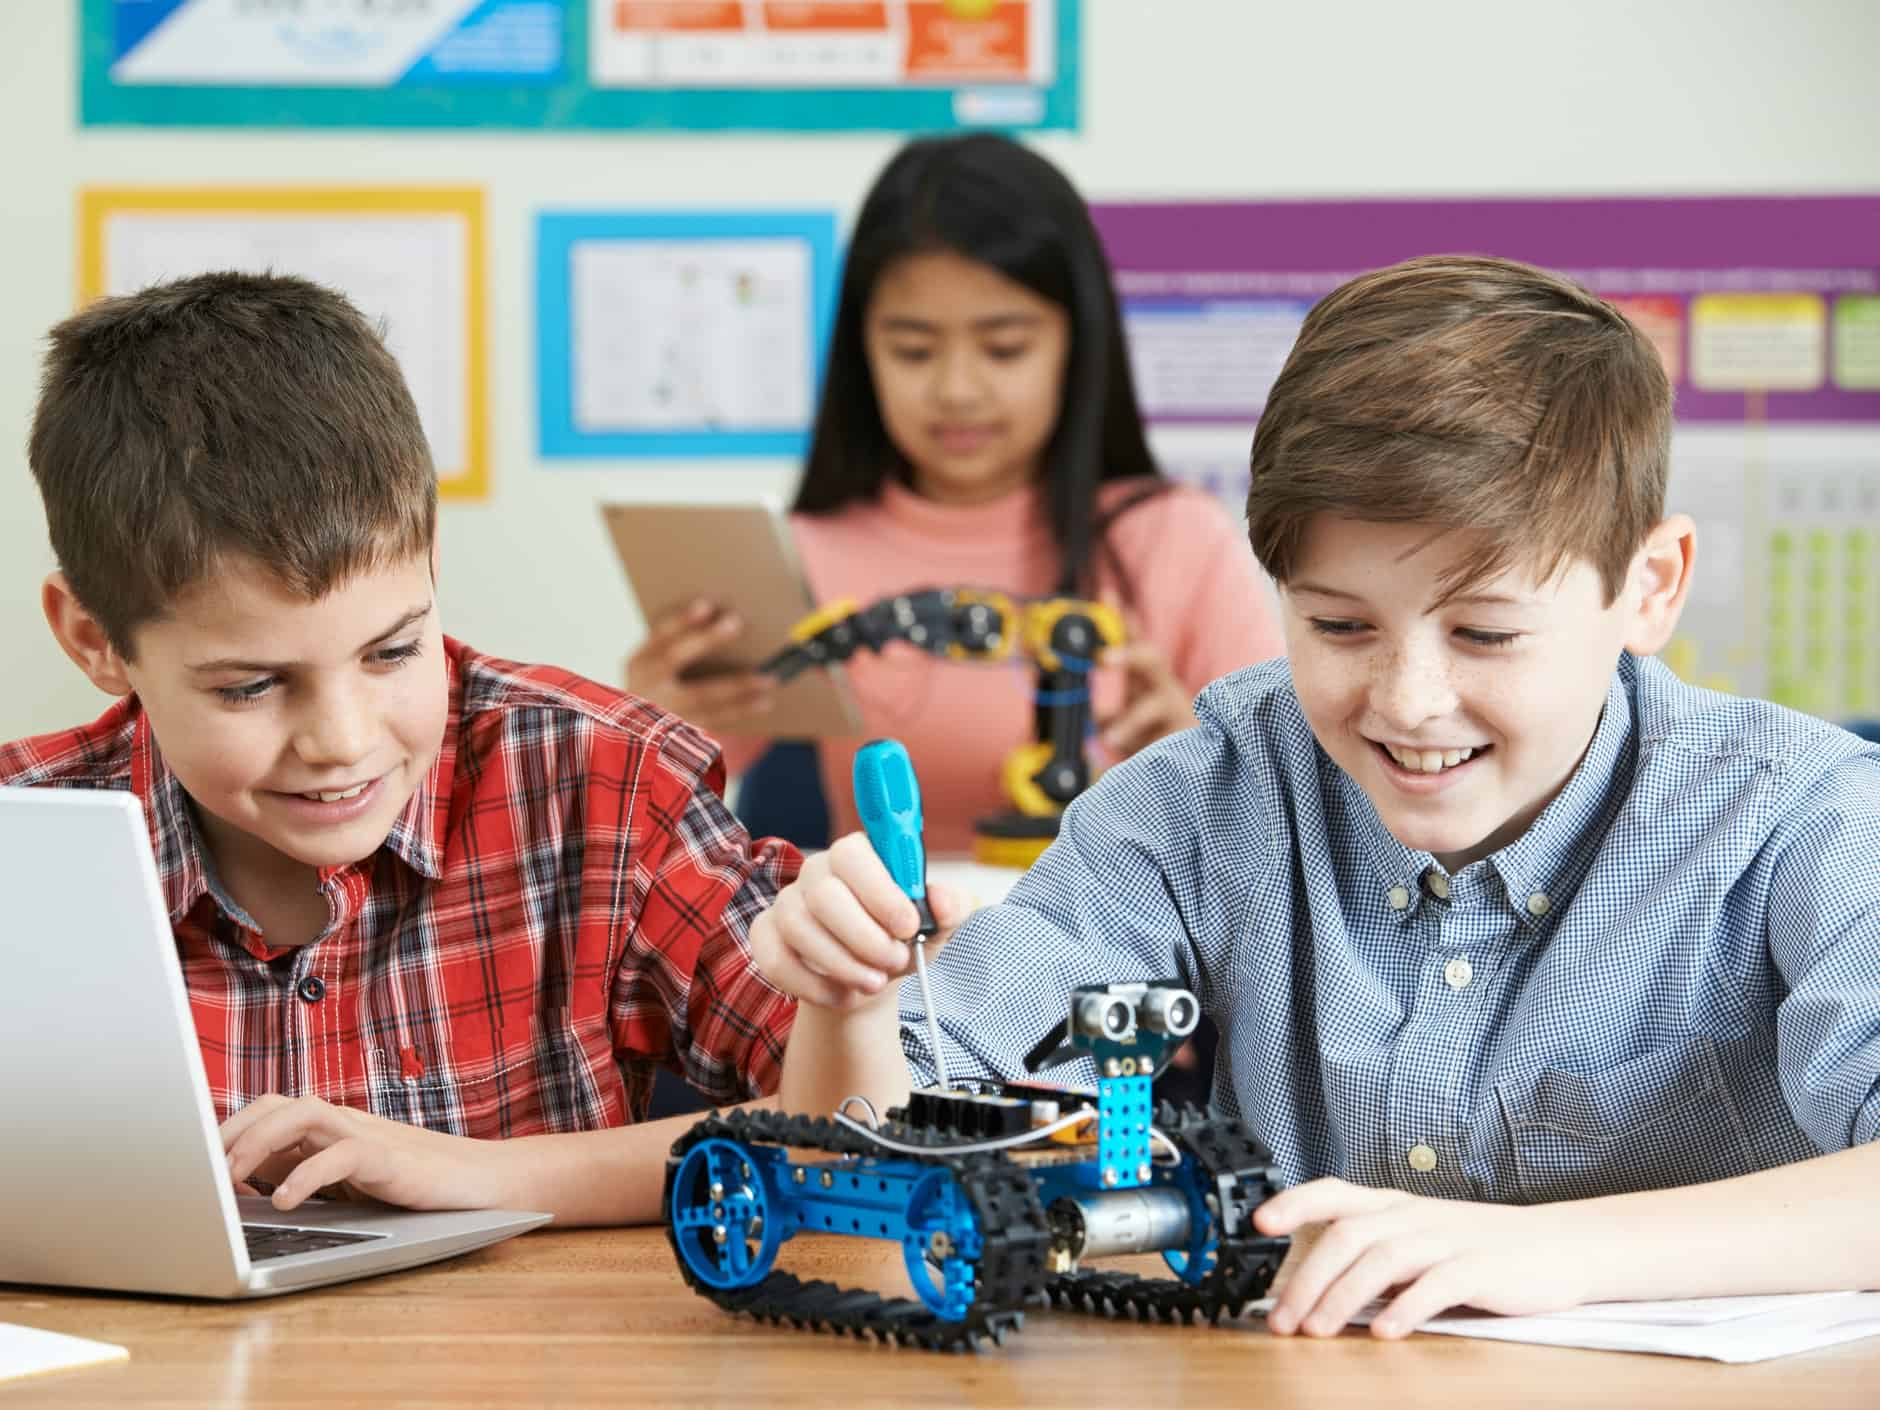 How Important is Adding Robotics as a Subject of Study in Schools?